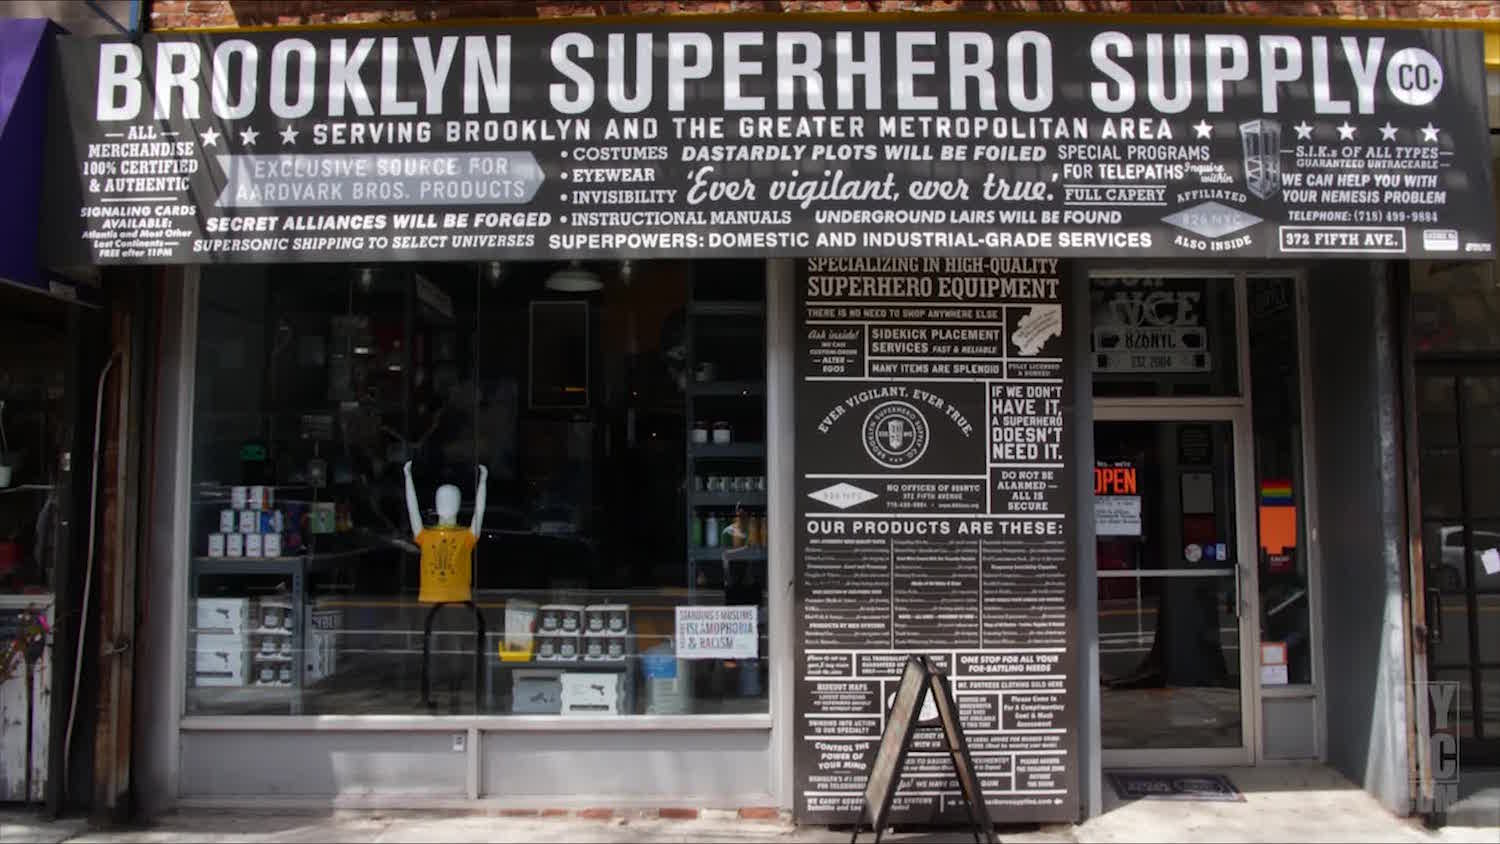 Brooklyn Superhero Supply Co.